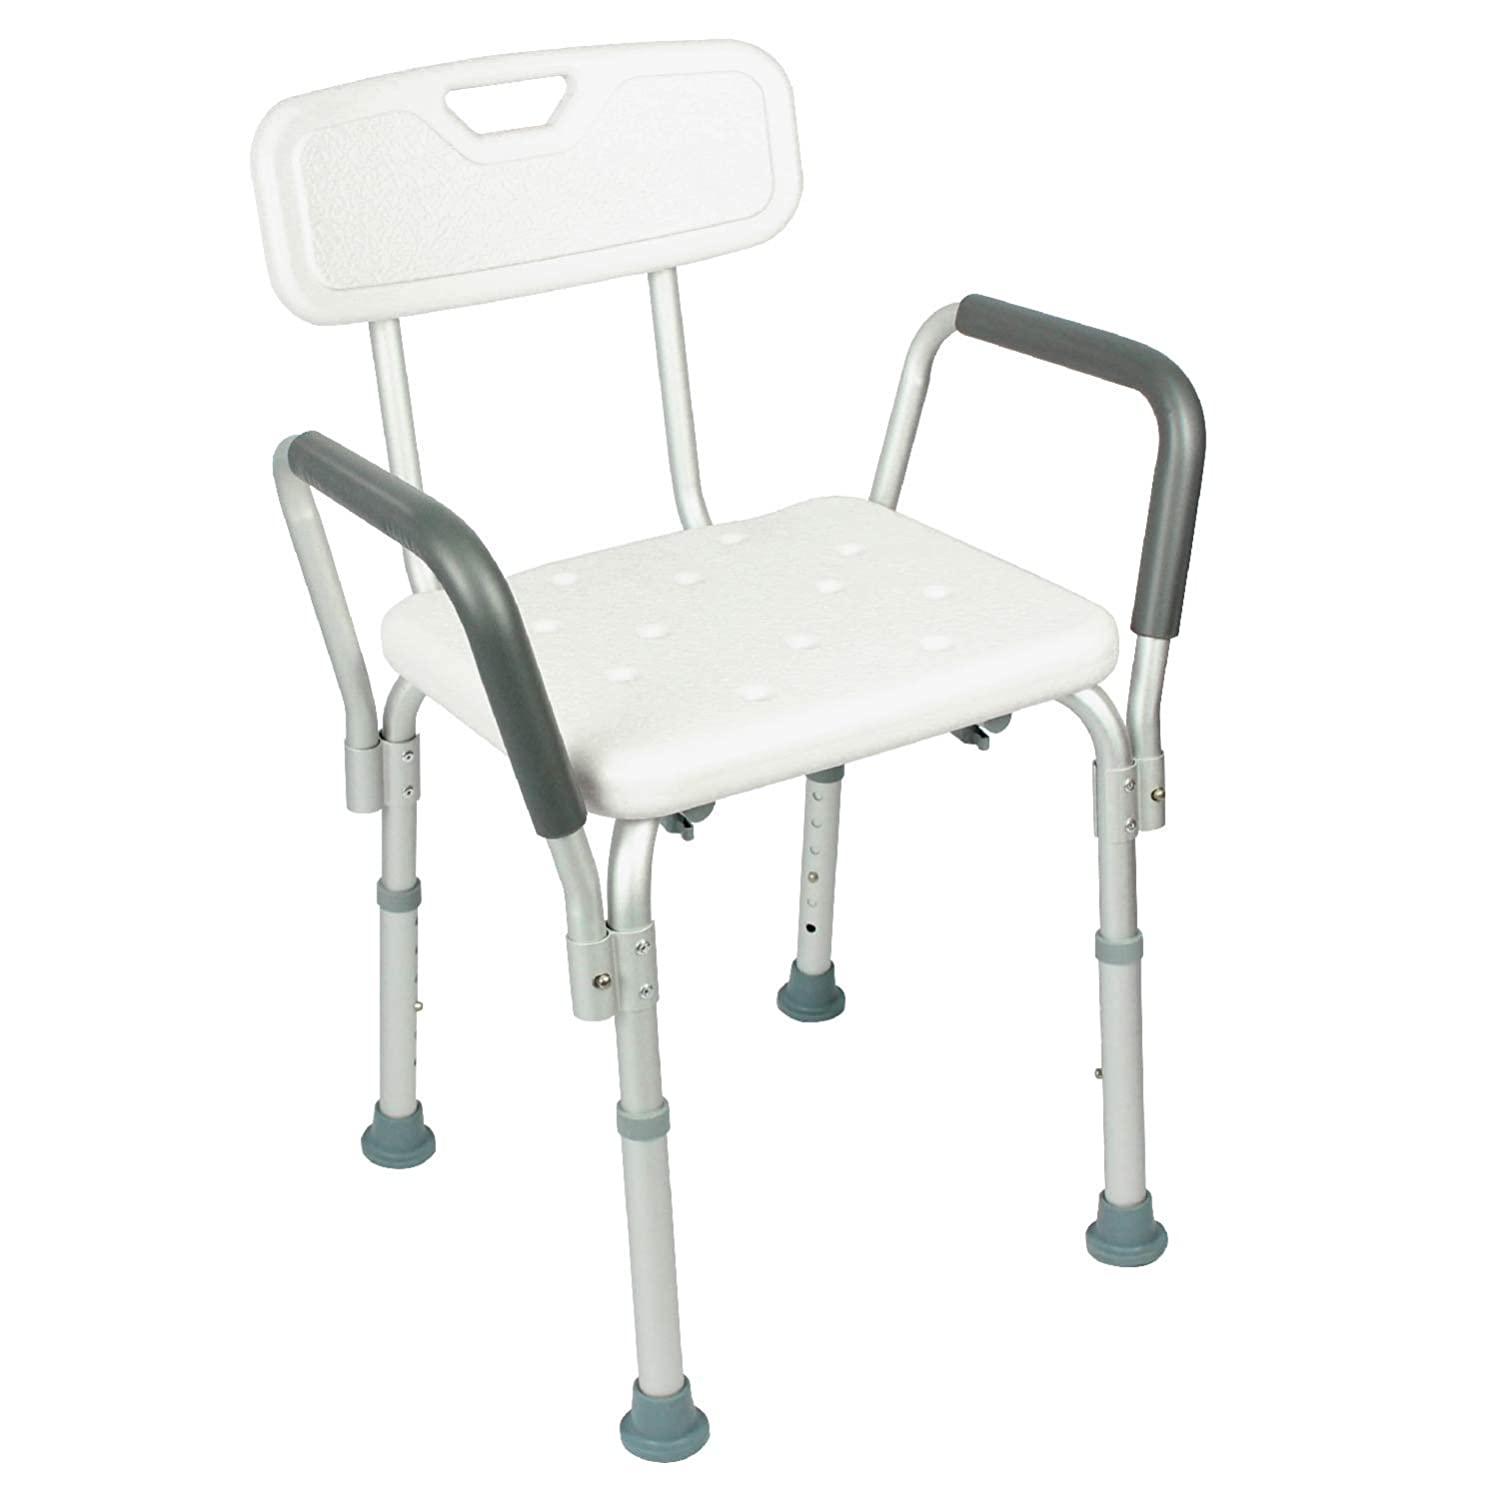 Top 10 Best Shower Chairs for the Elderly 2016 2017 on Flipboard